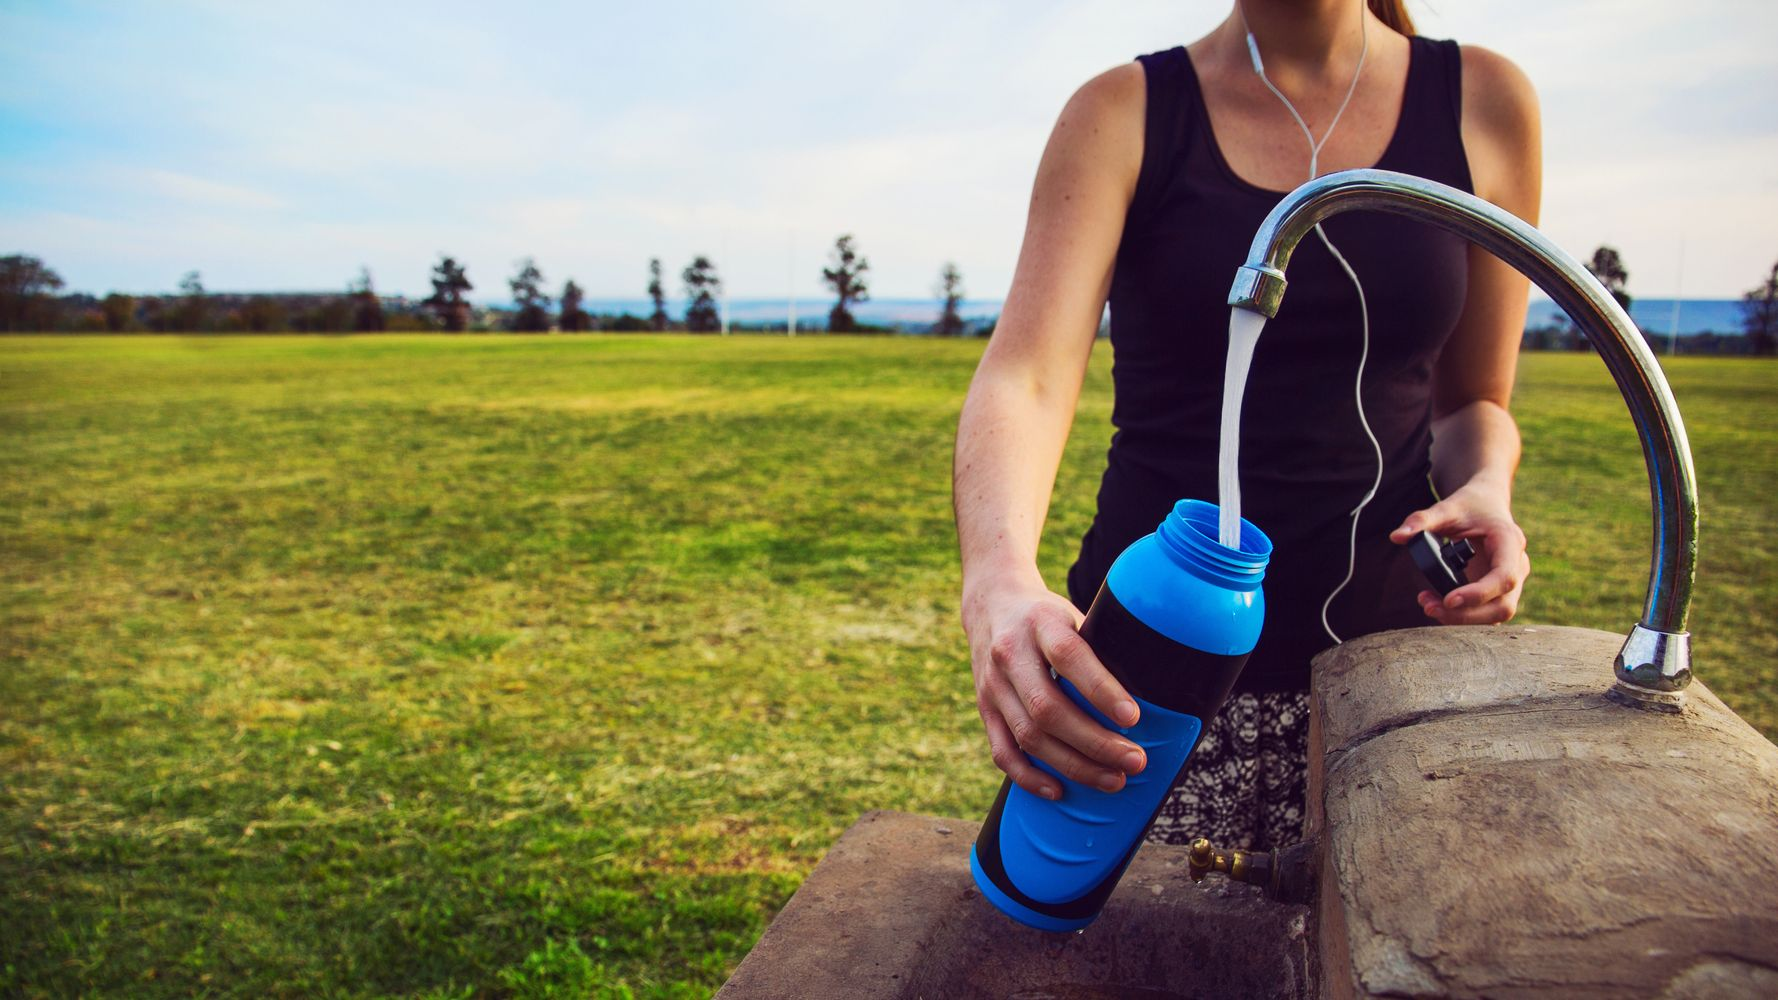 10 Of The Highest-Rated BPA-Free Water Bottles On Amazon | HuffPost Life